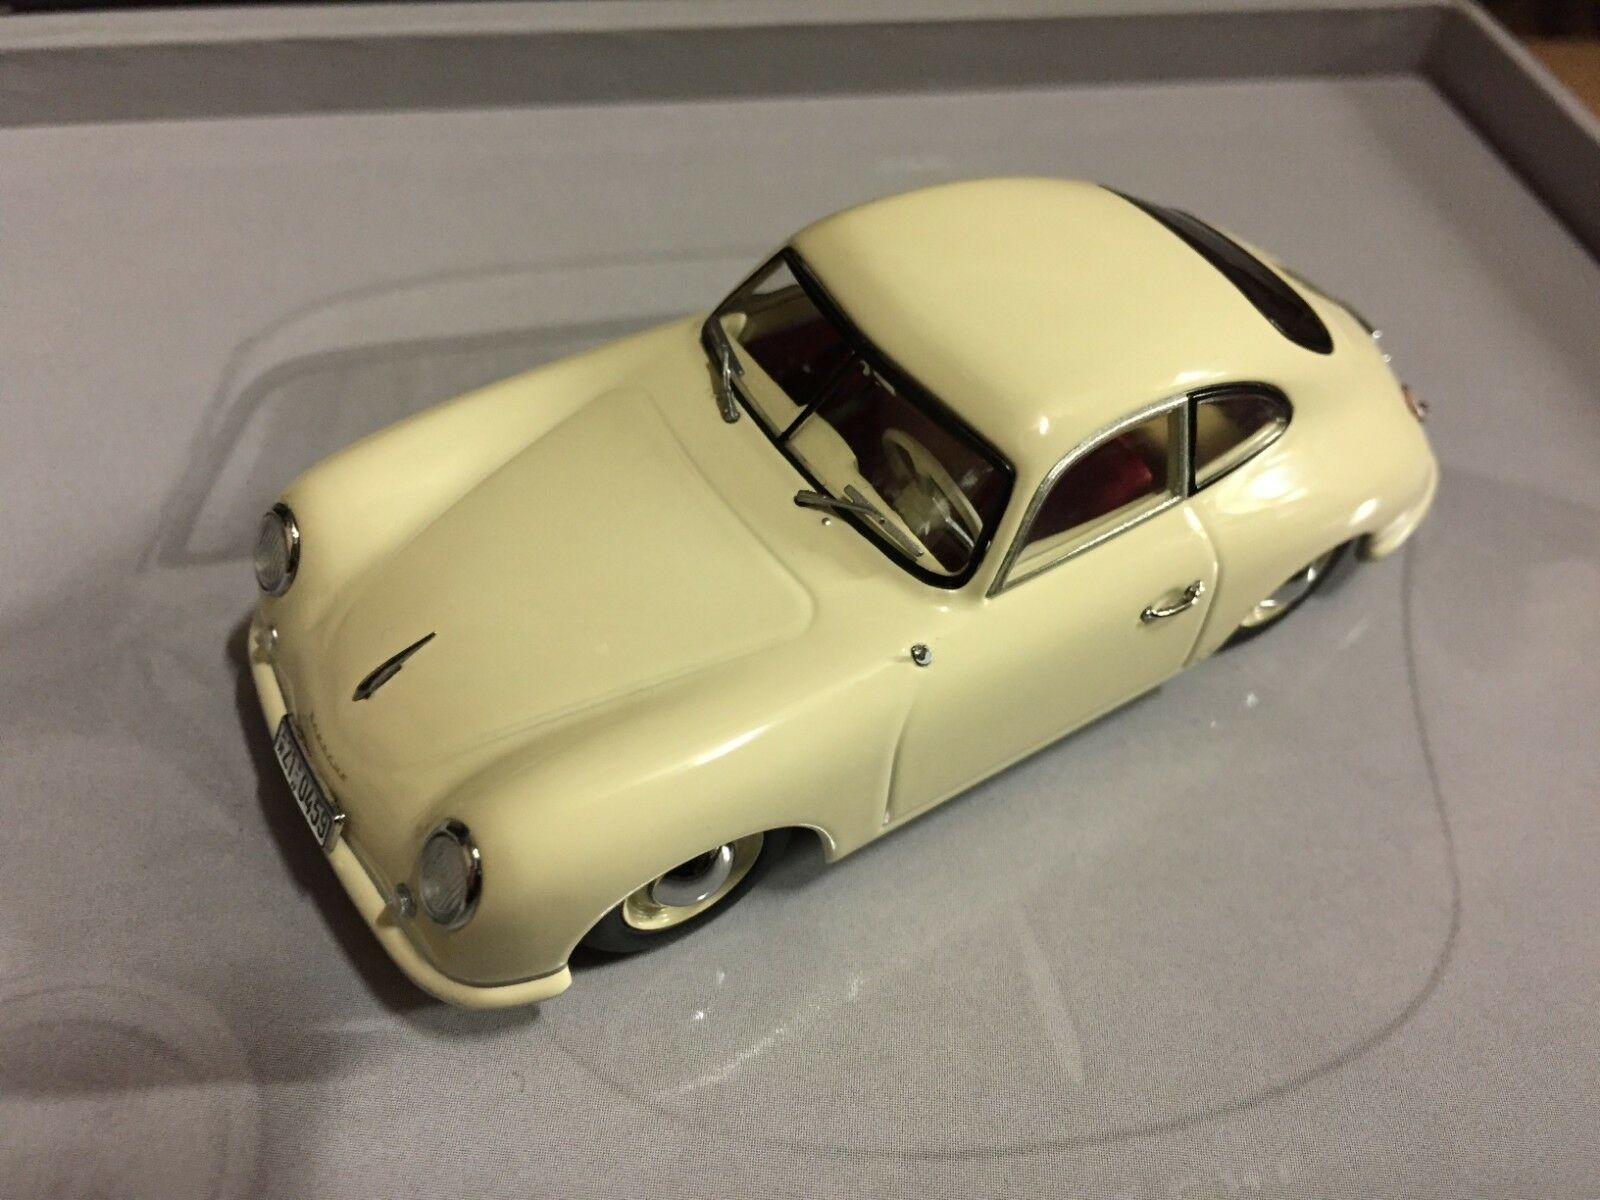 WAP0200180B DEALER MINICHAMPS 1:43 PORSCHE 356 COUPE 1950  60 JAHRE  FREE SHIP.